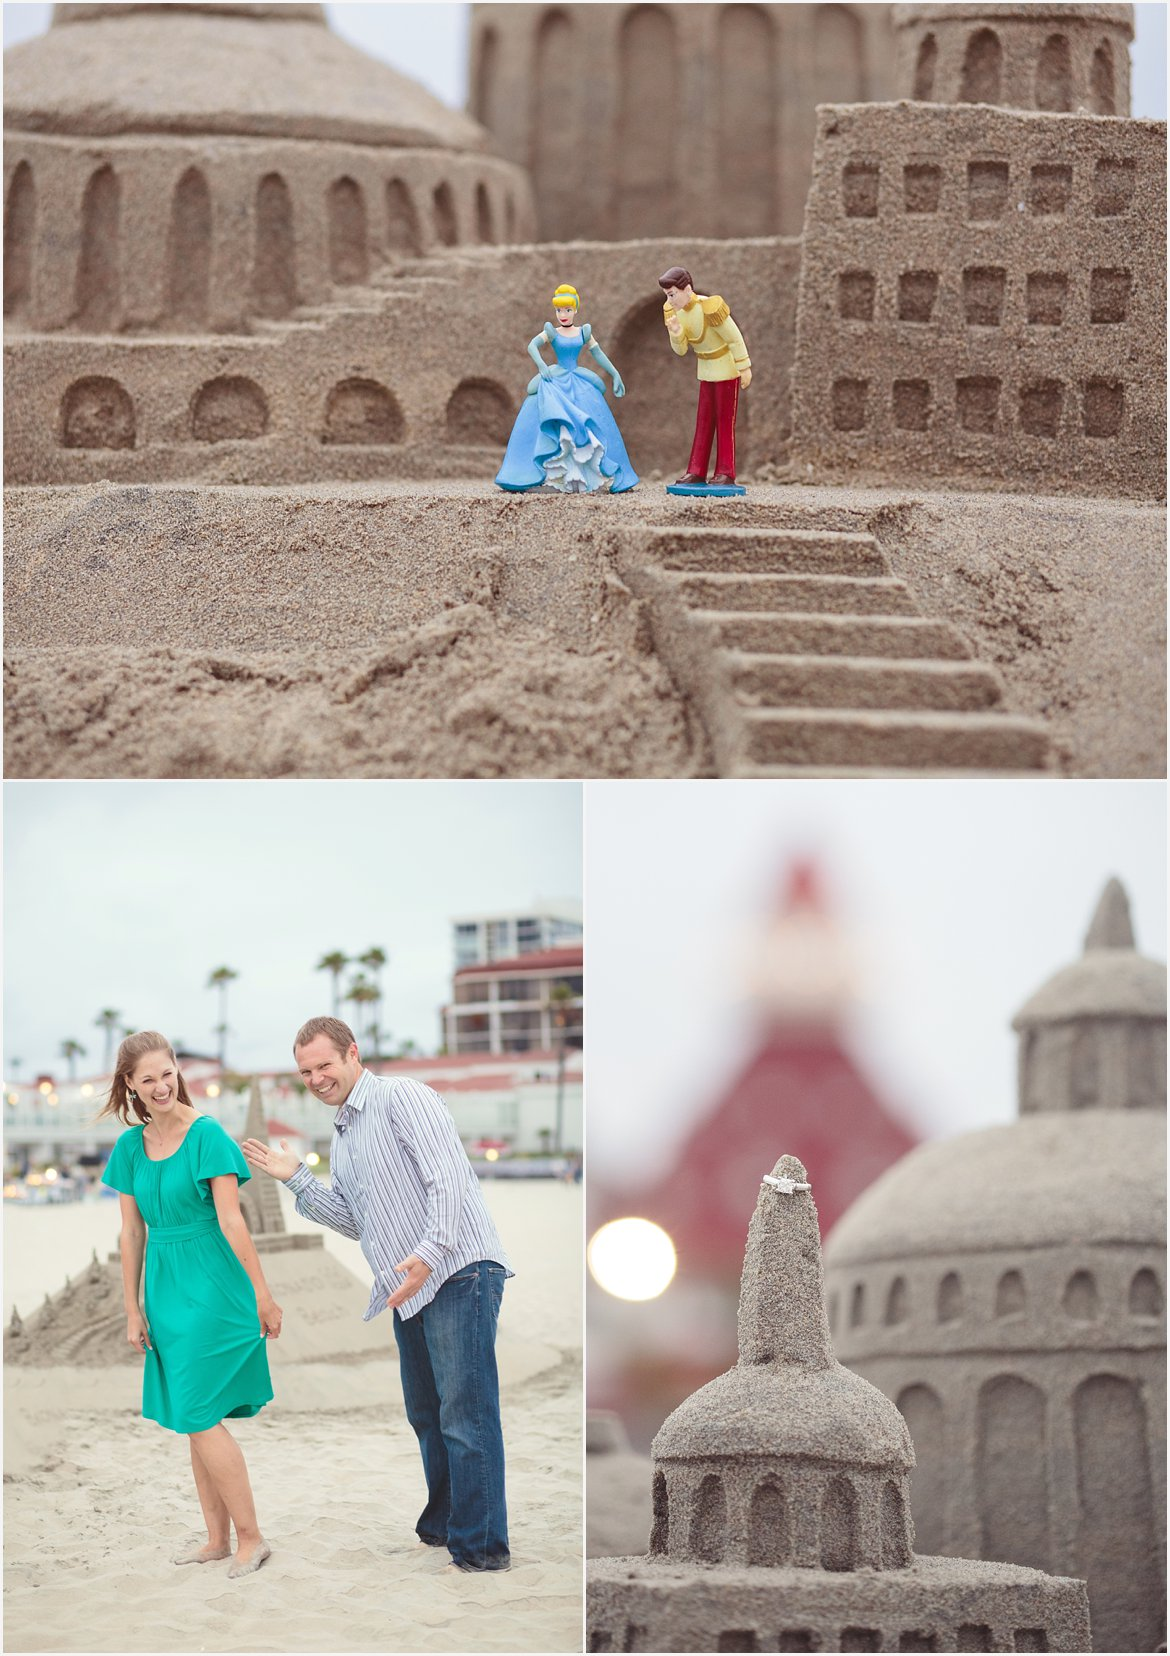 Sandcastle Man Coronado| Beach Photography in San Diego